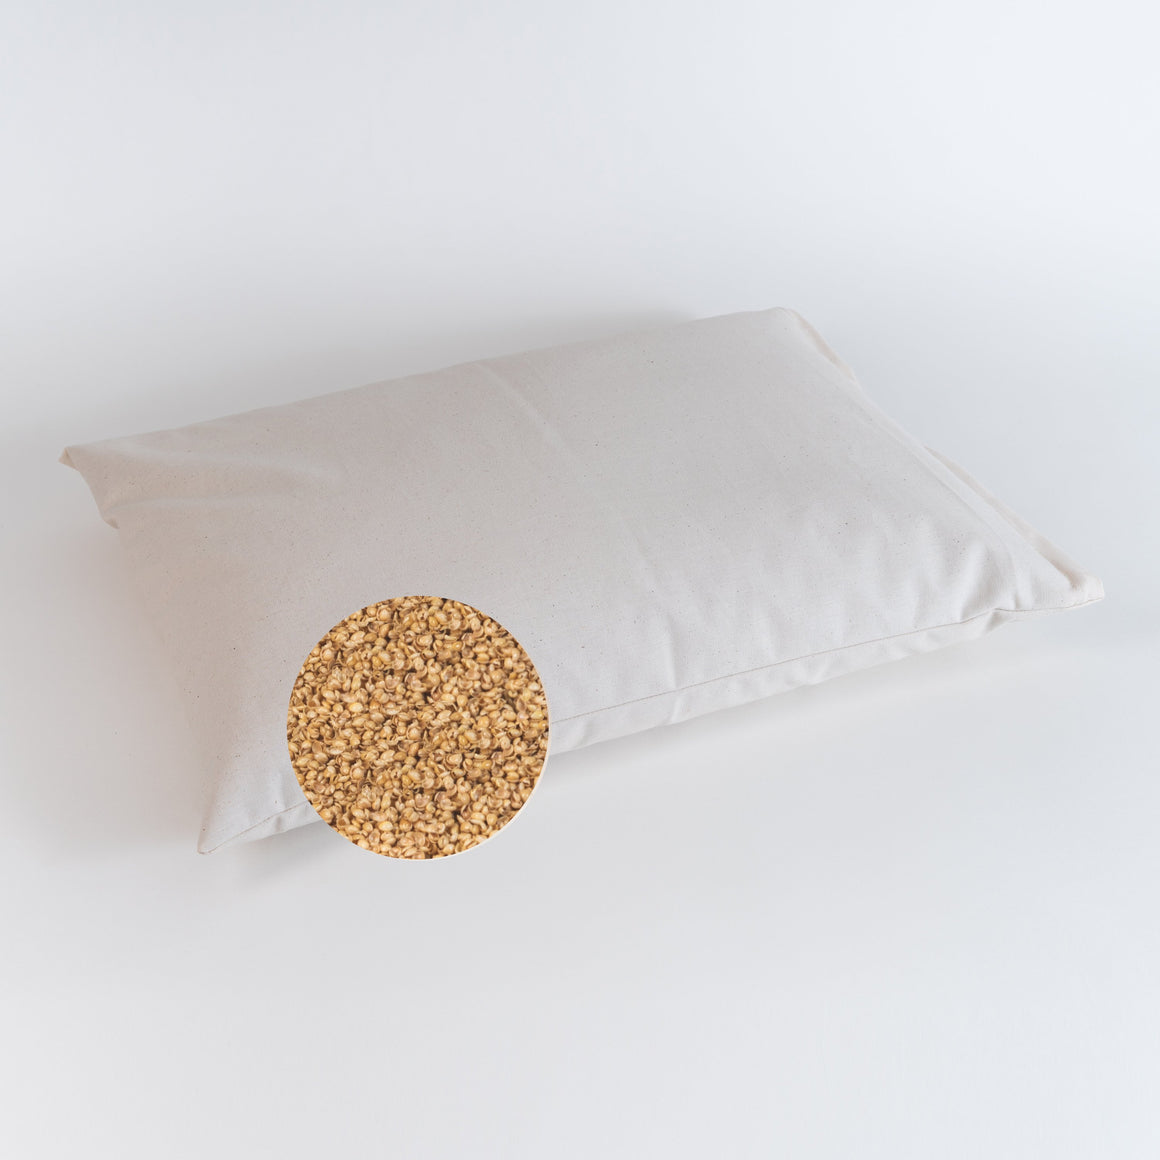 Sachi Organics Rejuvenation Millet Pillow